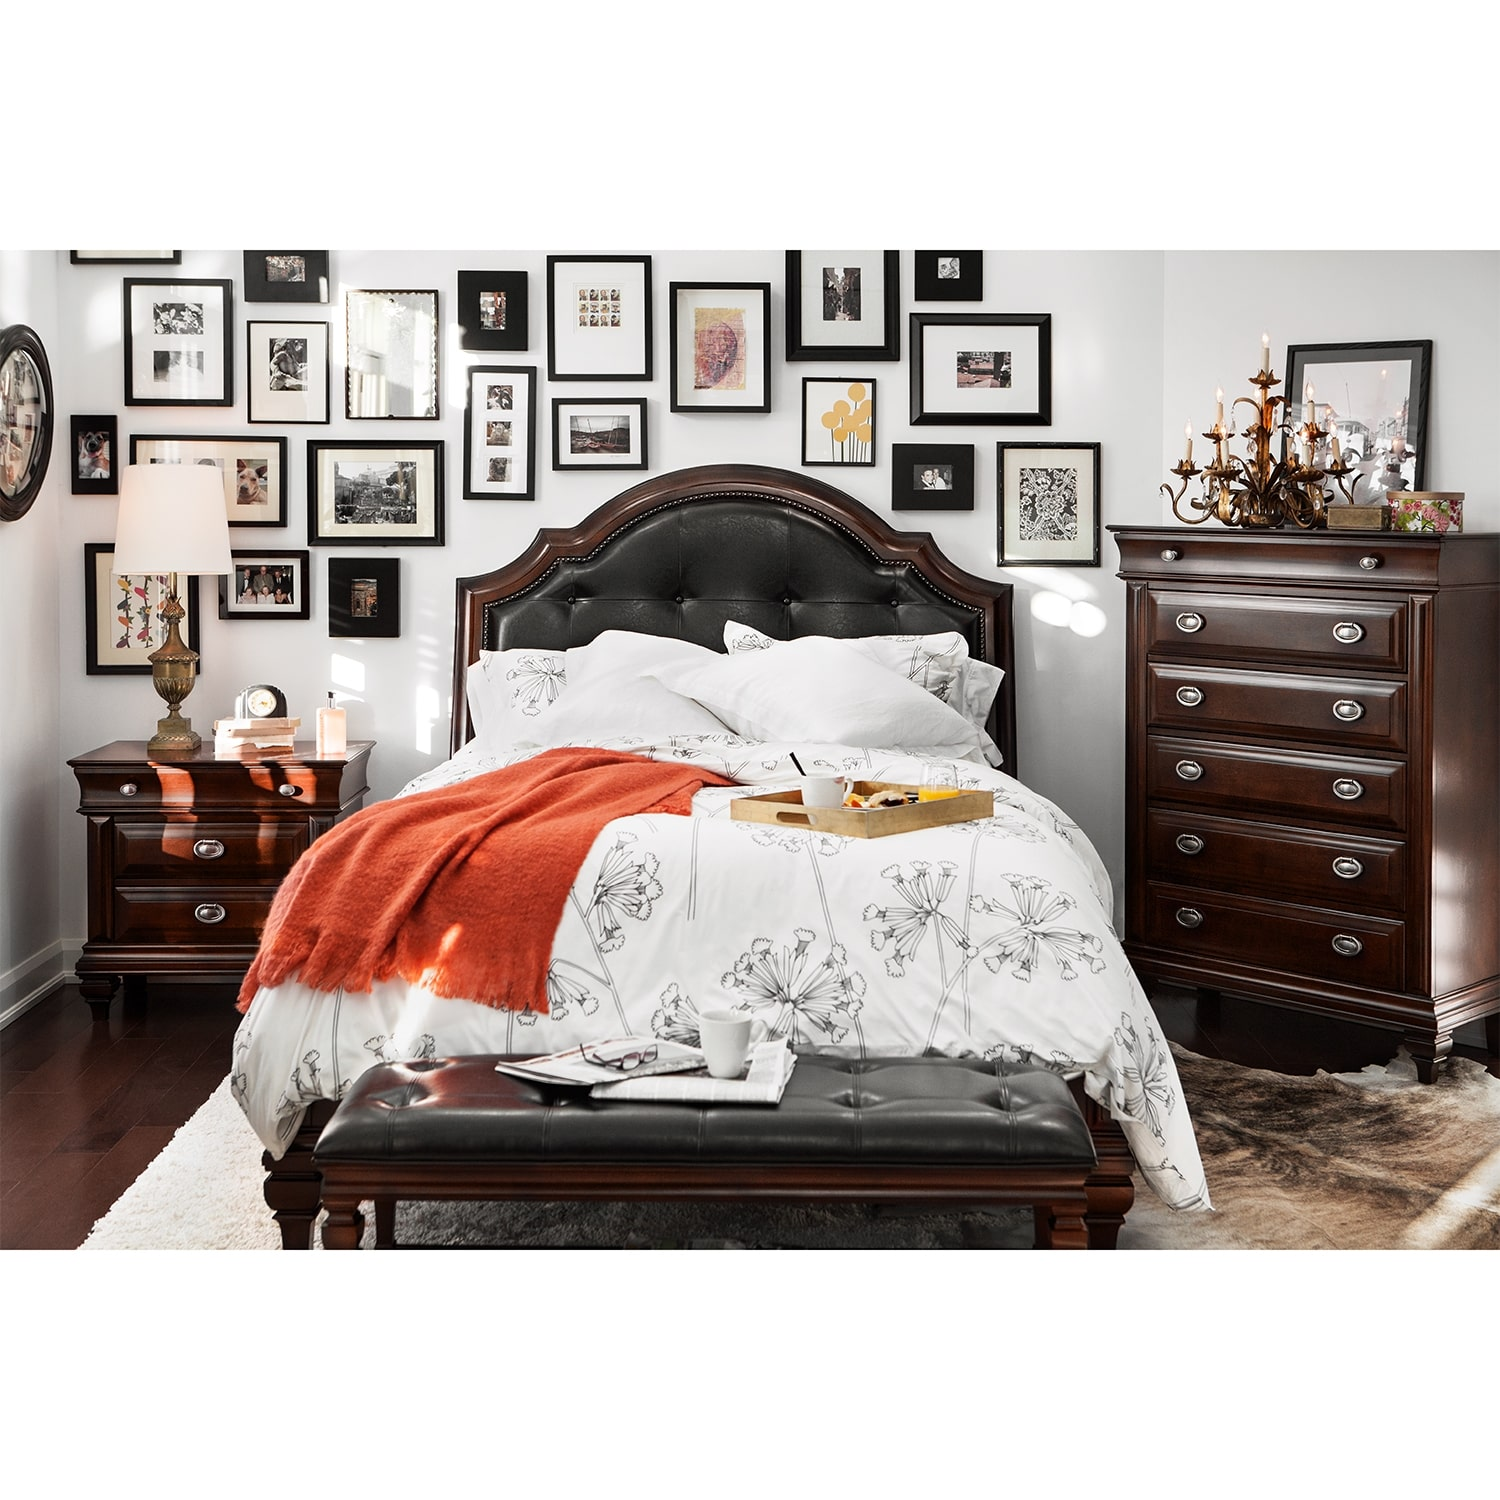 Manhattan Queen Upholstered Bed - Cherry | American Signature ...